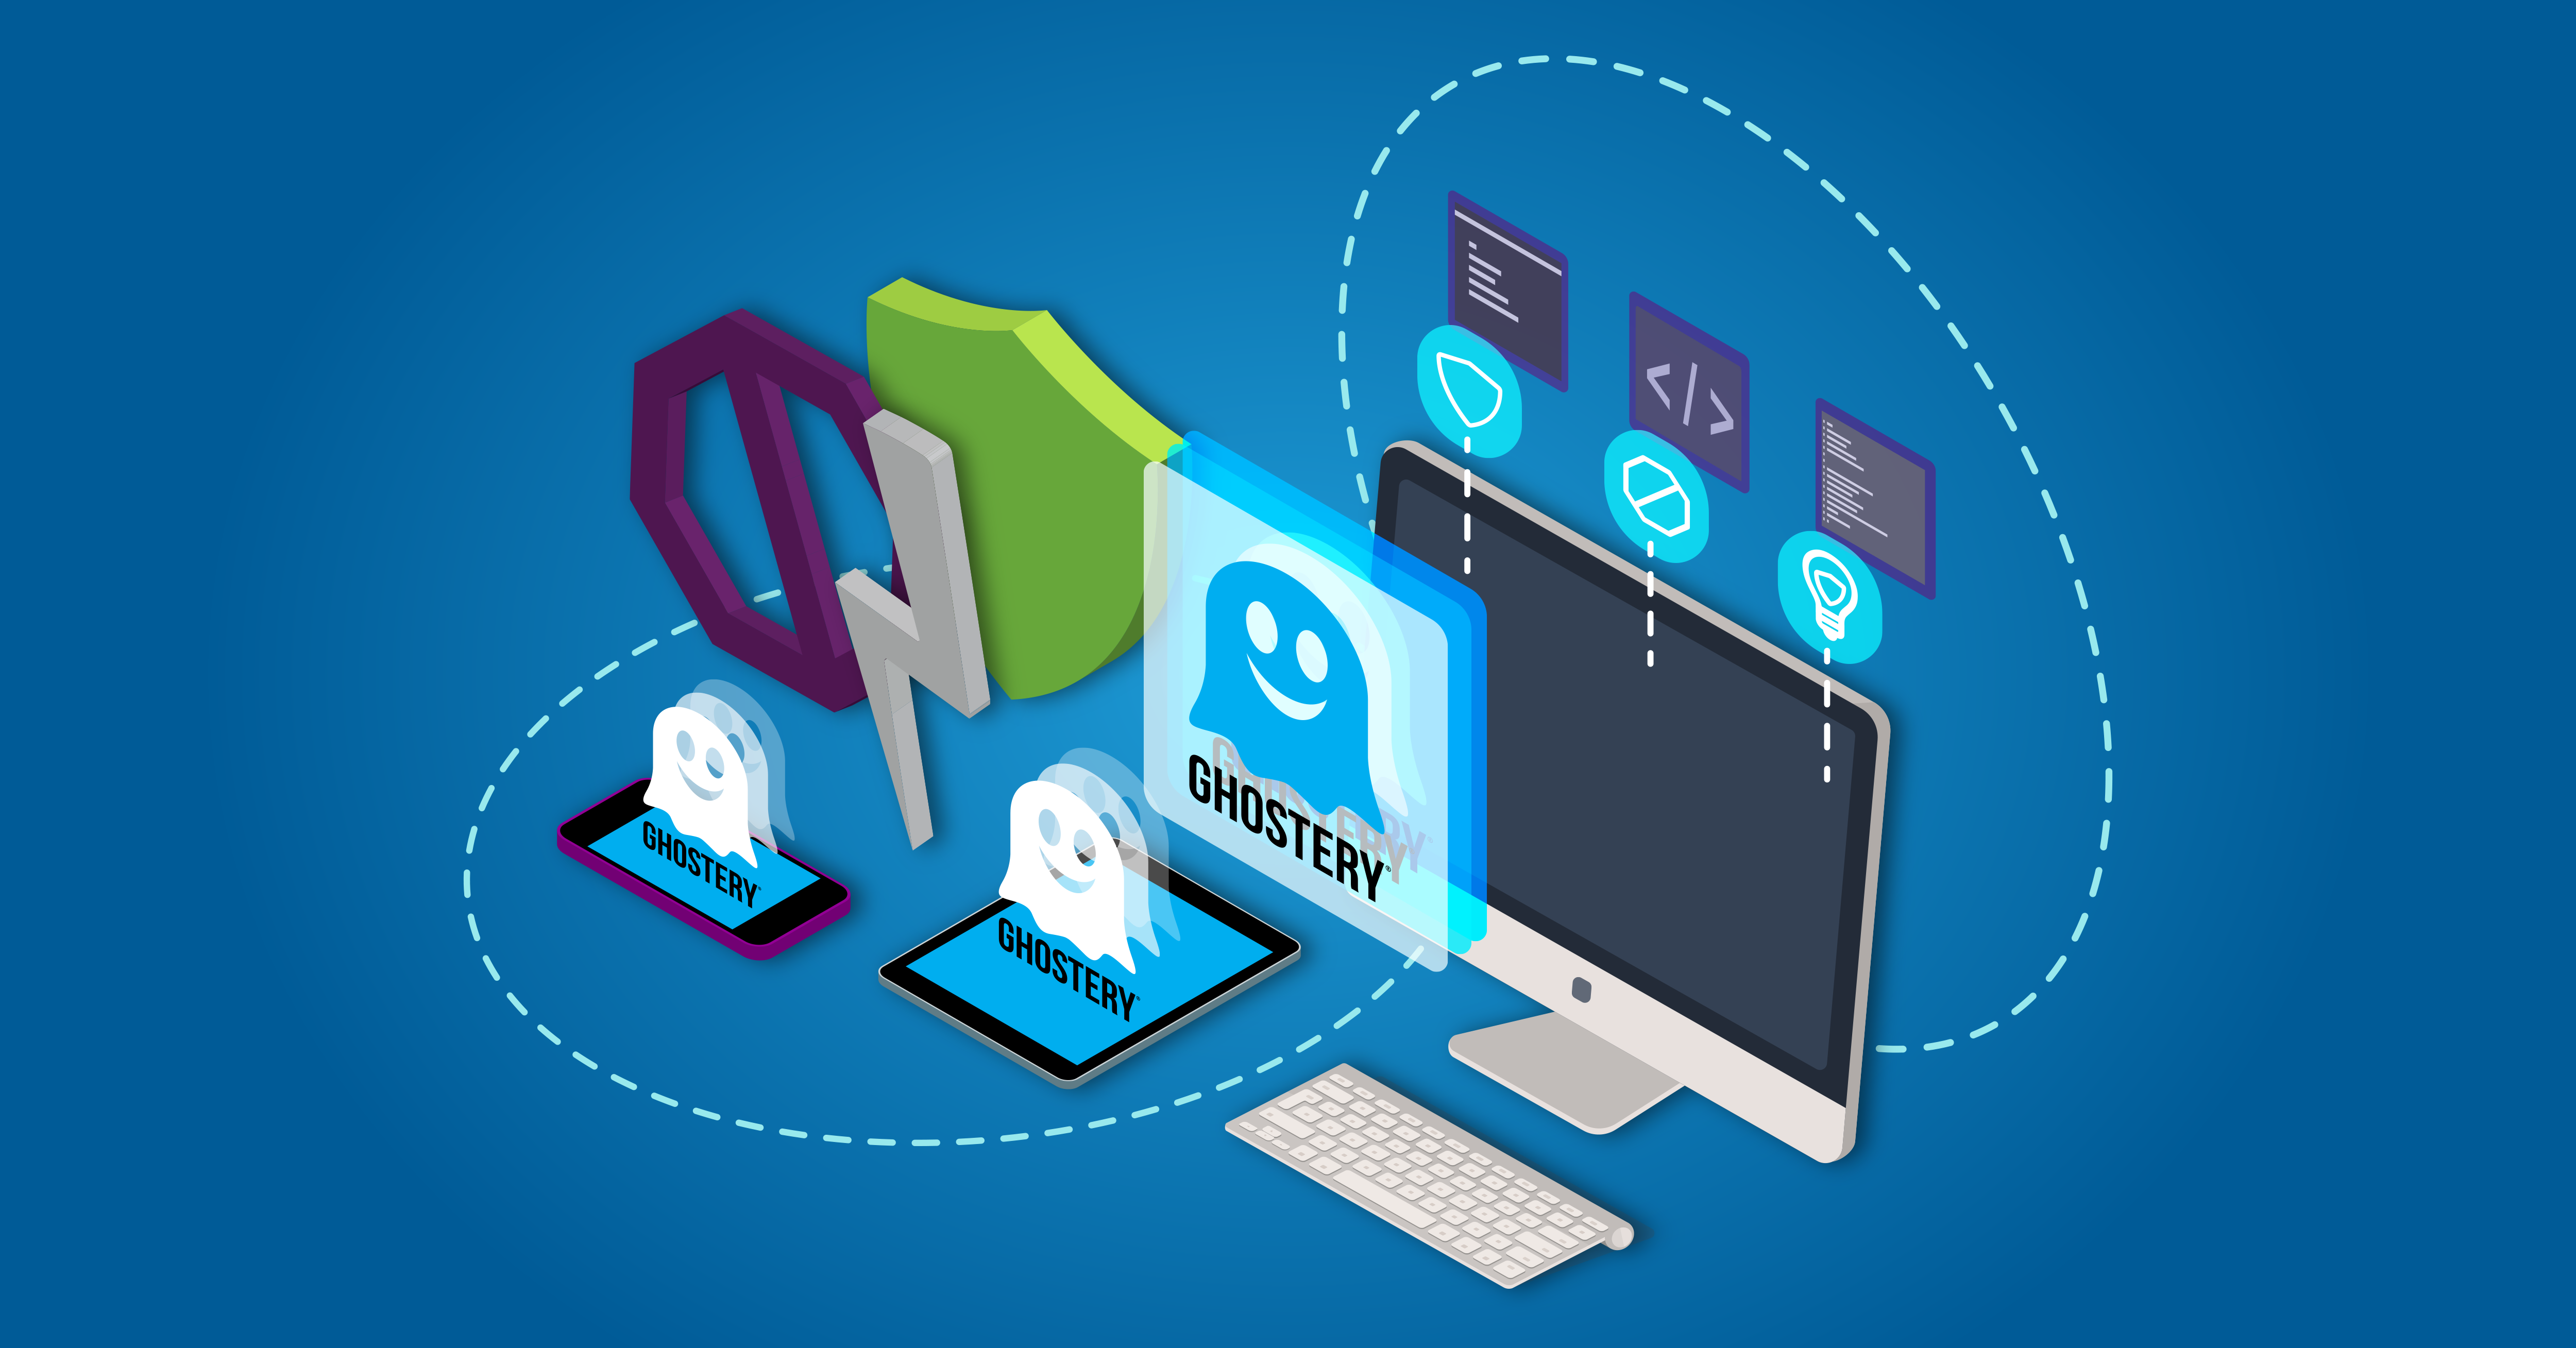 The Tracker Tax: Ghostery study reveals that tracking makes websites load 2 times slower